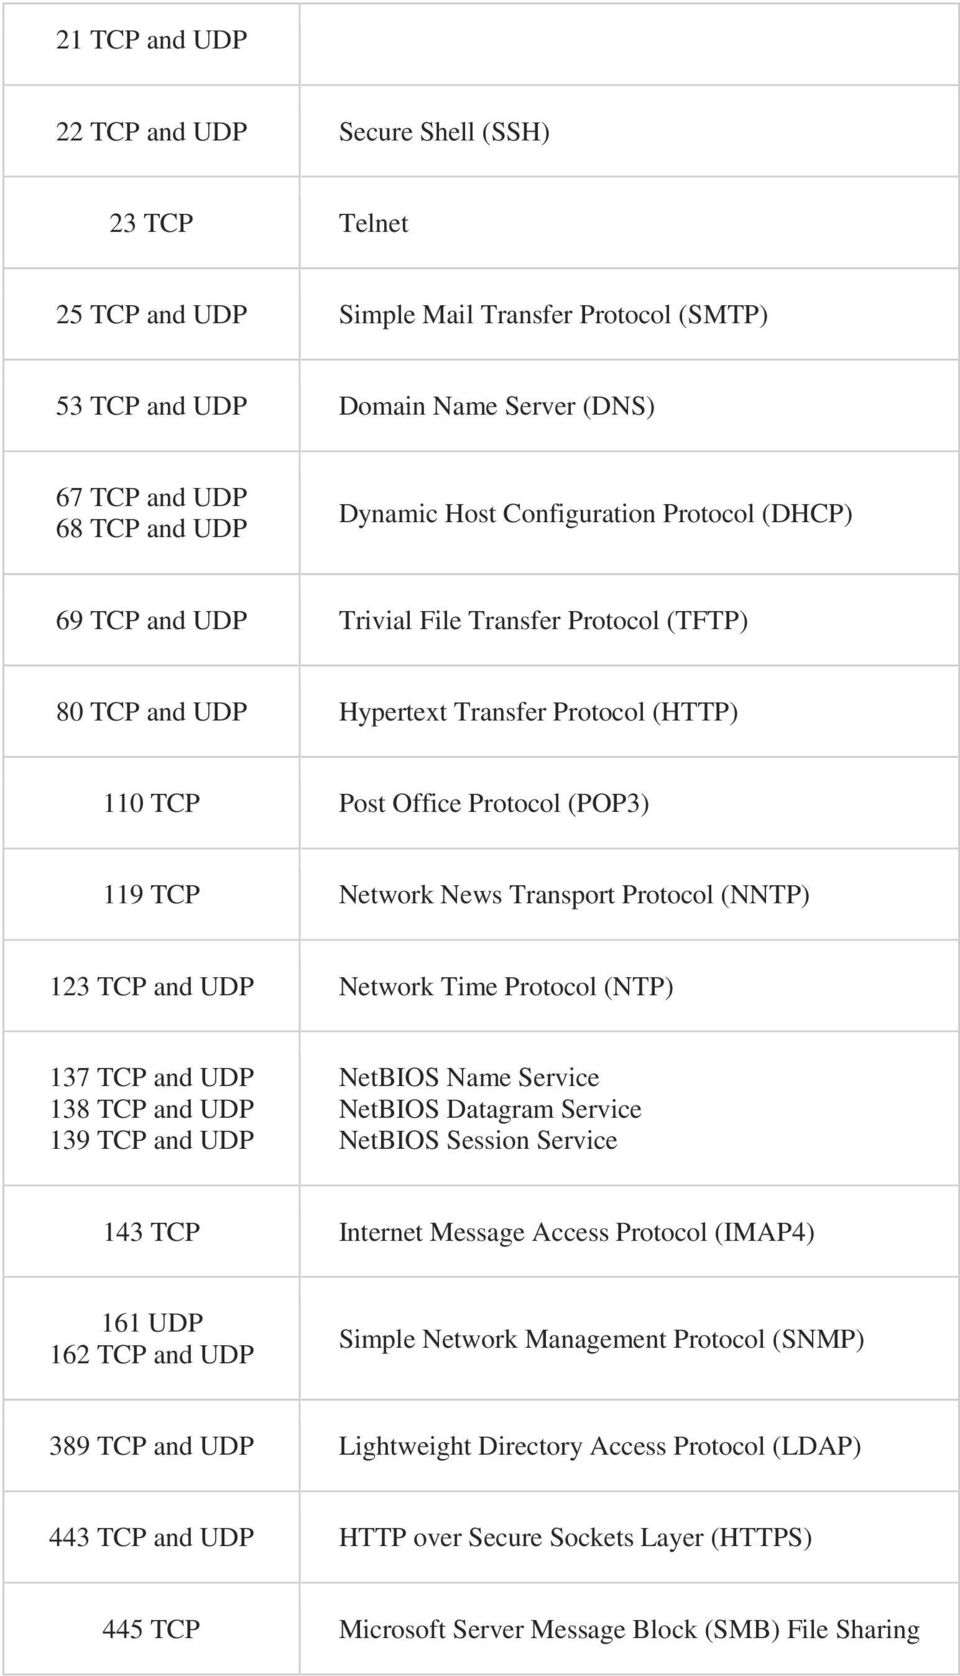 Protocol (NNTP) 123 TCP and UDP Network Time Protocol (NTP) 137 TCP and UDP 138 TCP and UDP 139 TCP and UDP NetBIOS Name Service NetBIOS Datagram Service NetBIOS Session Service 143 TCP Internet